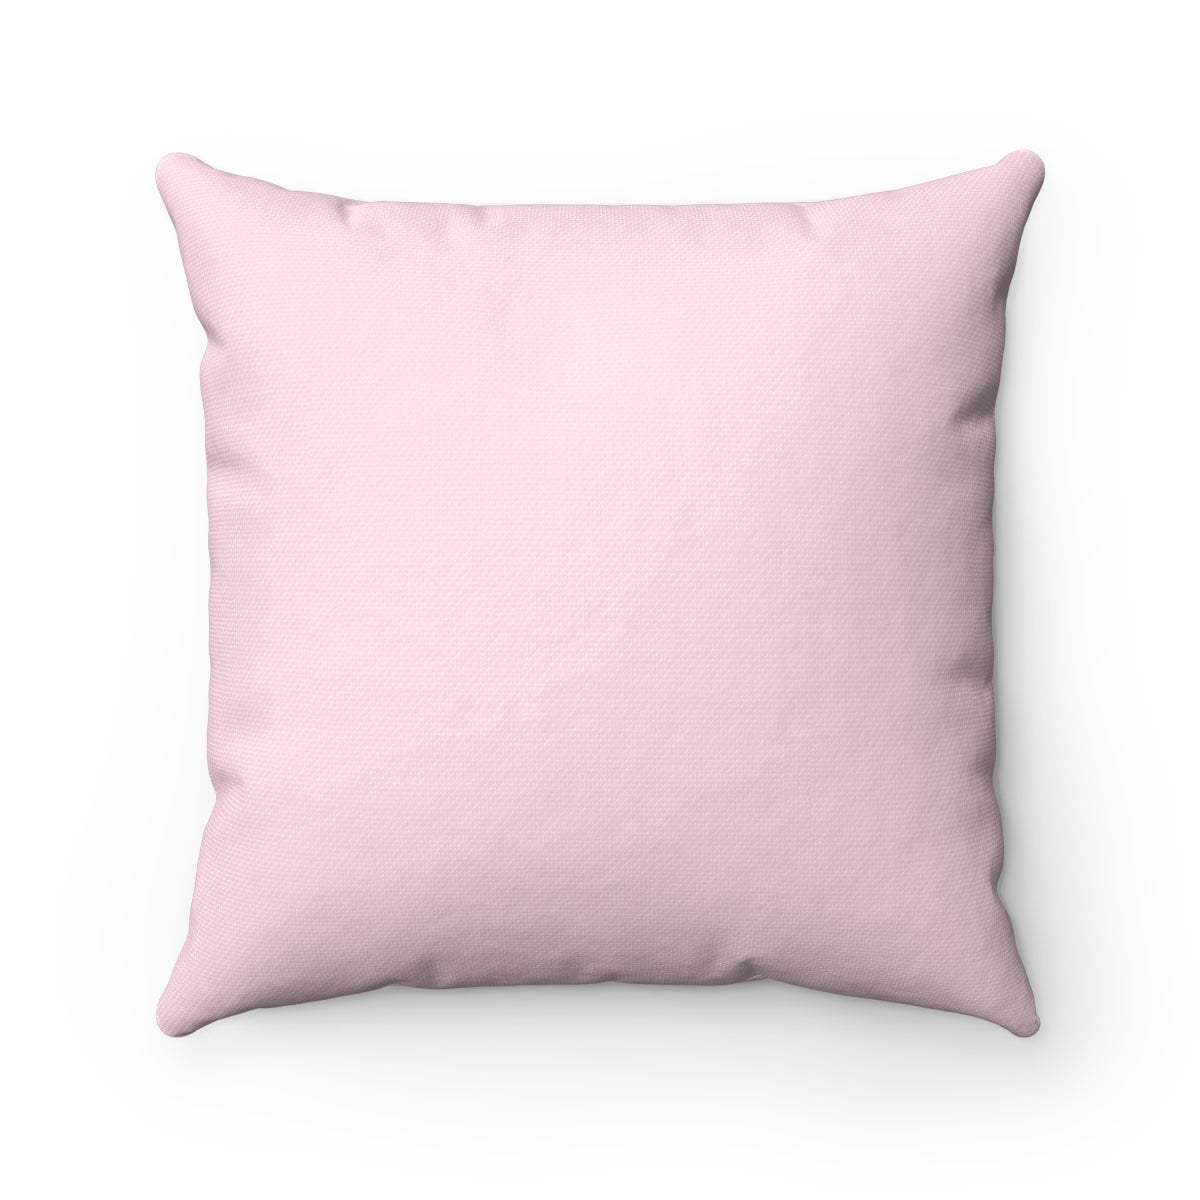 Beyond Cool Pillow